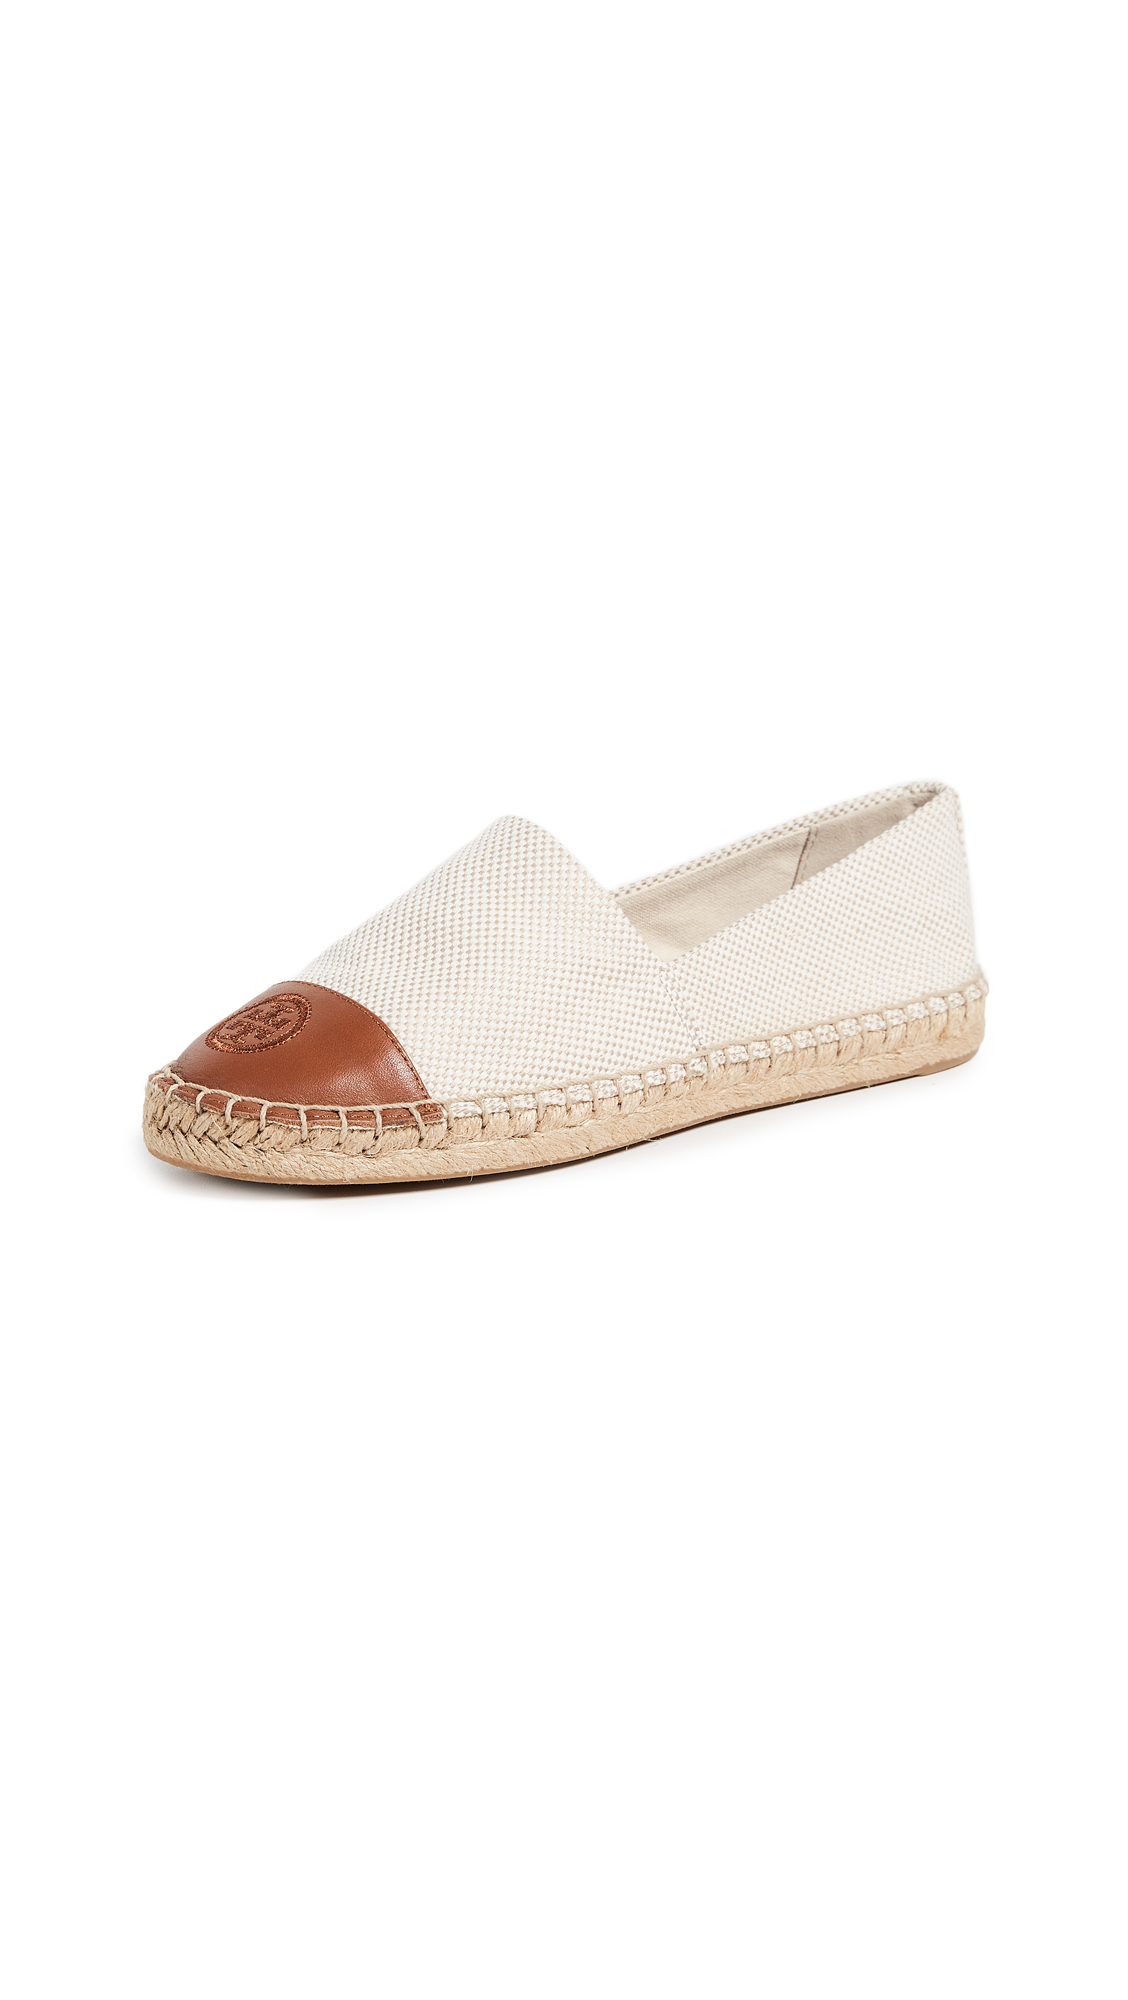 Tory Burch Colorblock Flat Espadrilles - Perfect Sand/Perfect Cuoio